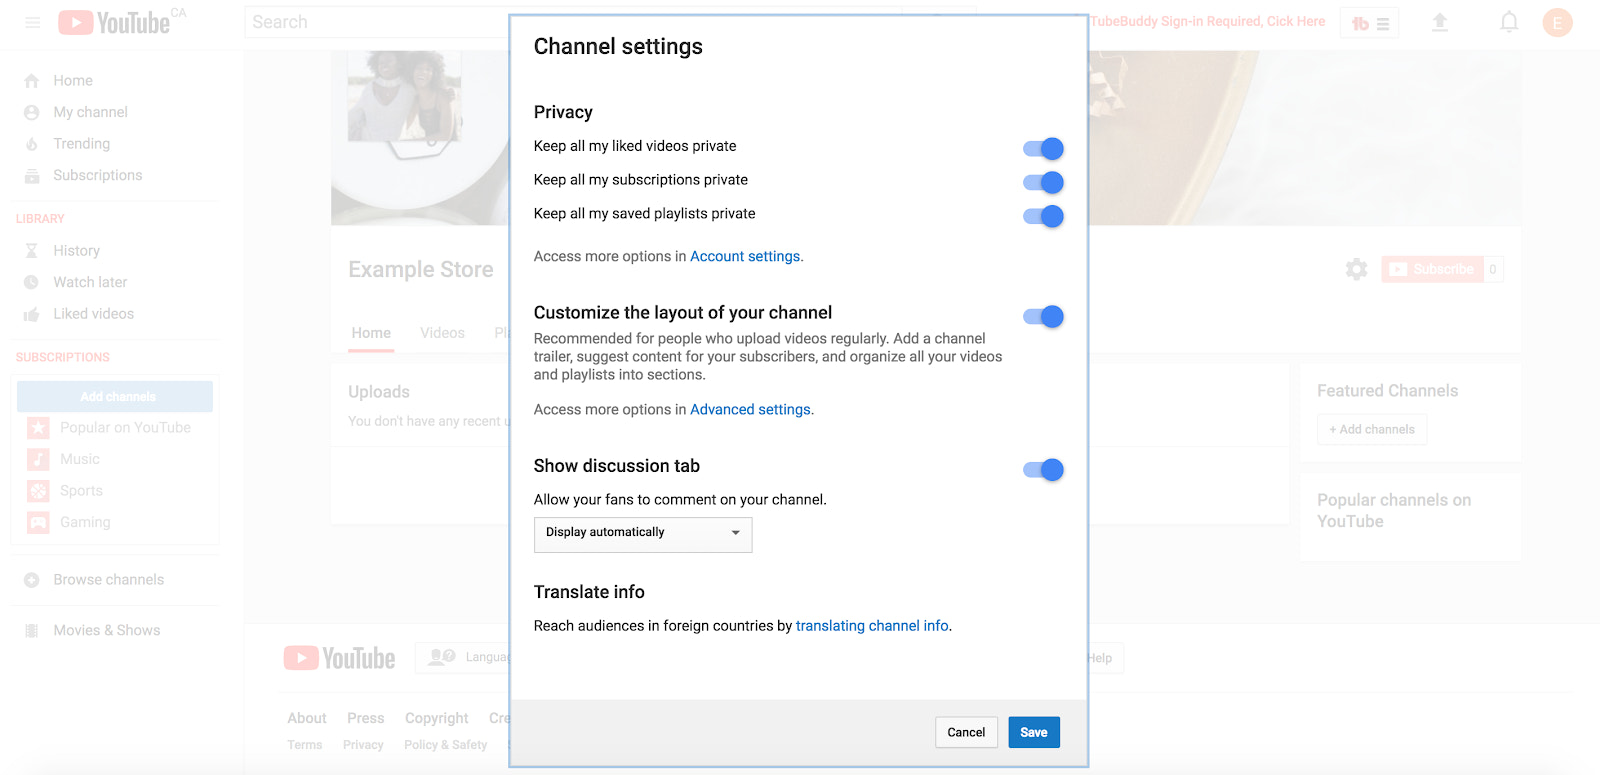 All of the channel settings you can customize when using YouTube for your business